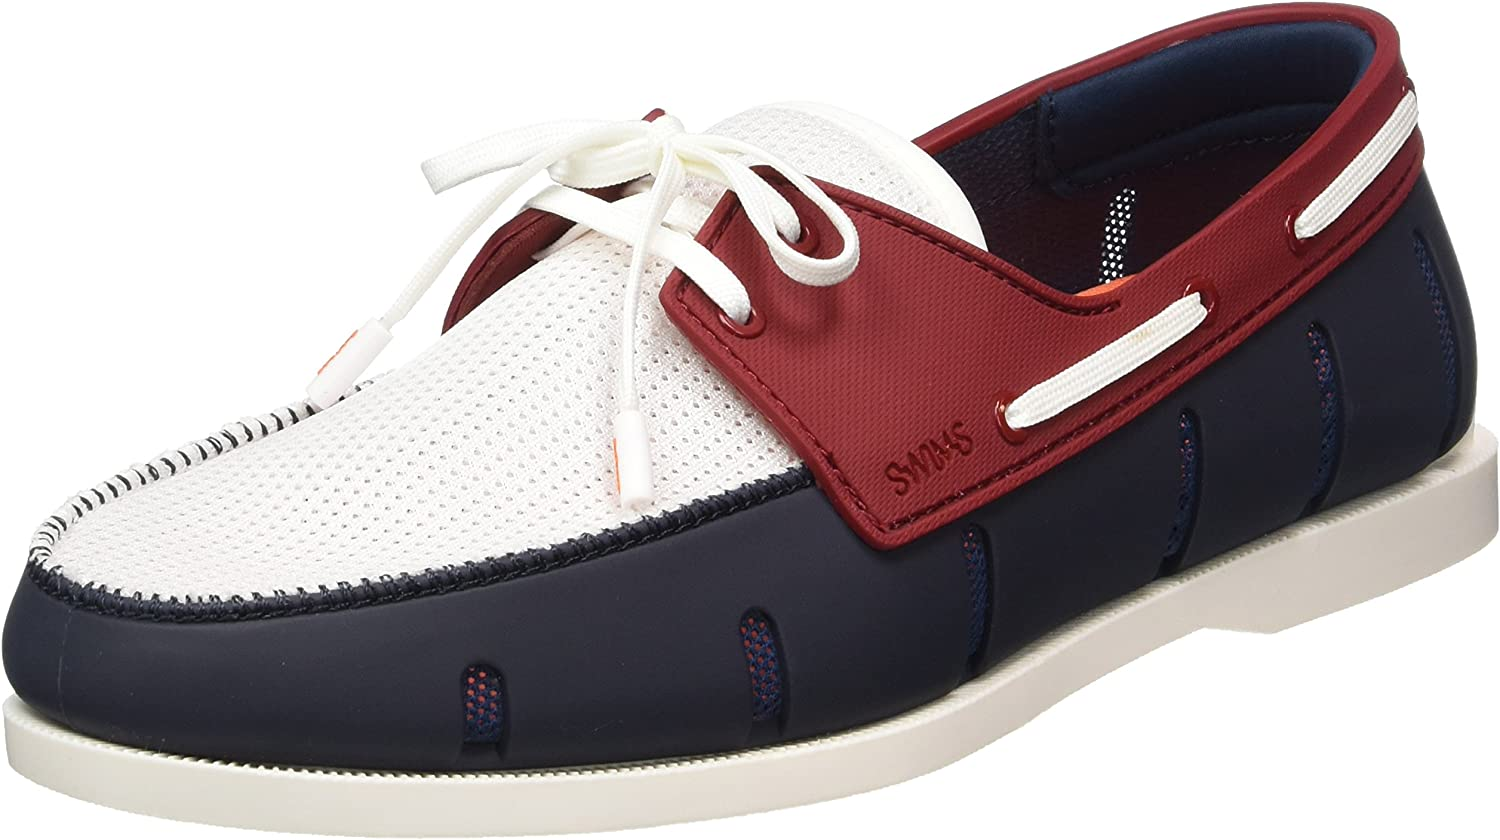 SWIMS Men's Boat Loafers, Ultralight and Durable, Stylish and Classic Look in color Combos